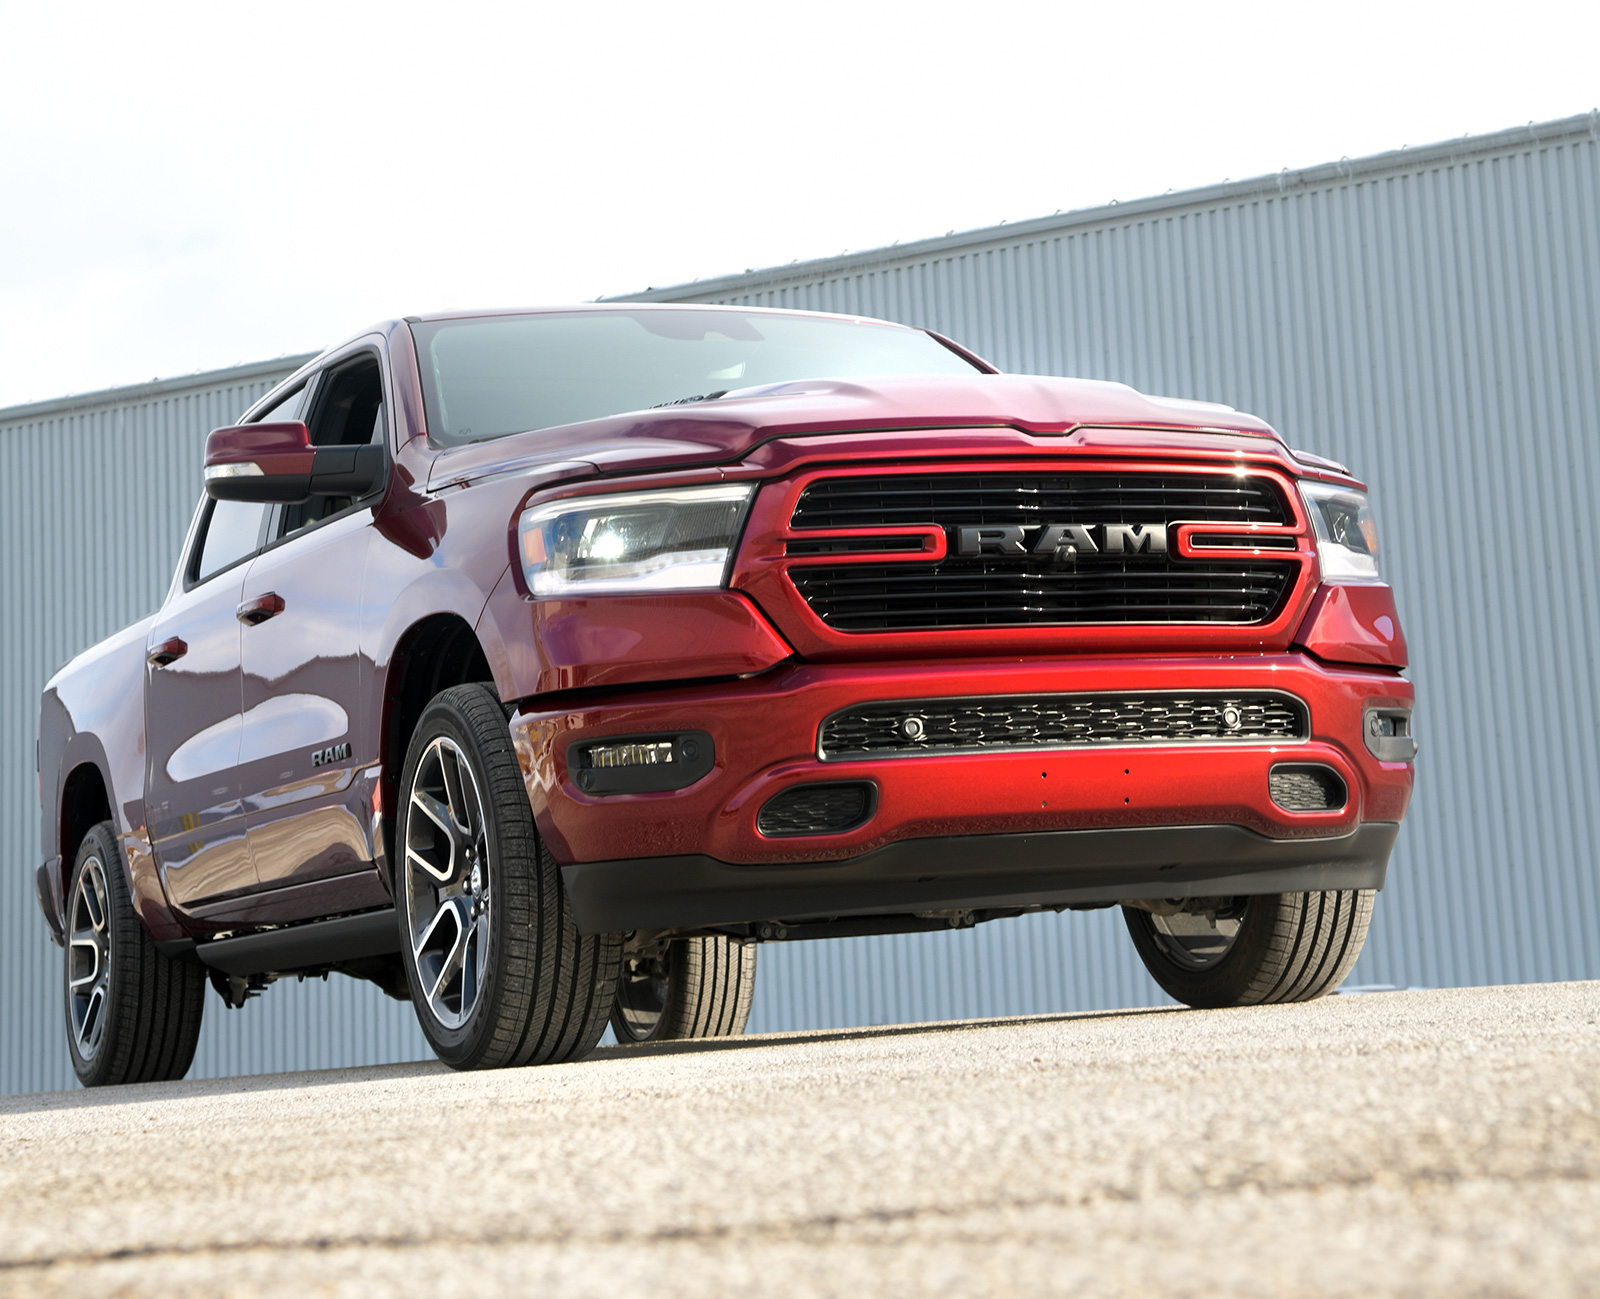 Canada Gets Its Own Special 2019 Ram 1500 Sport